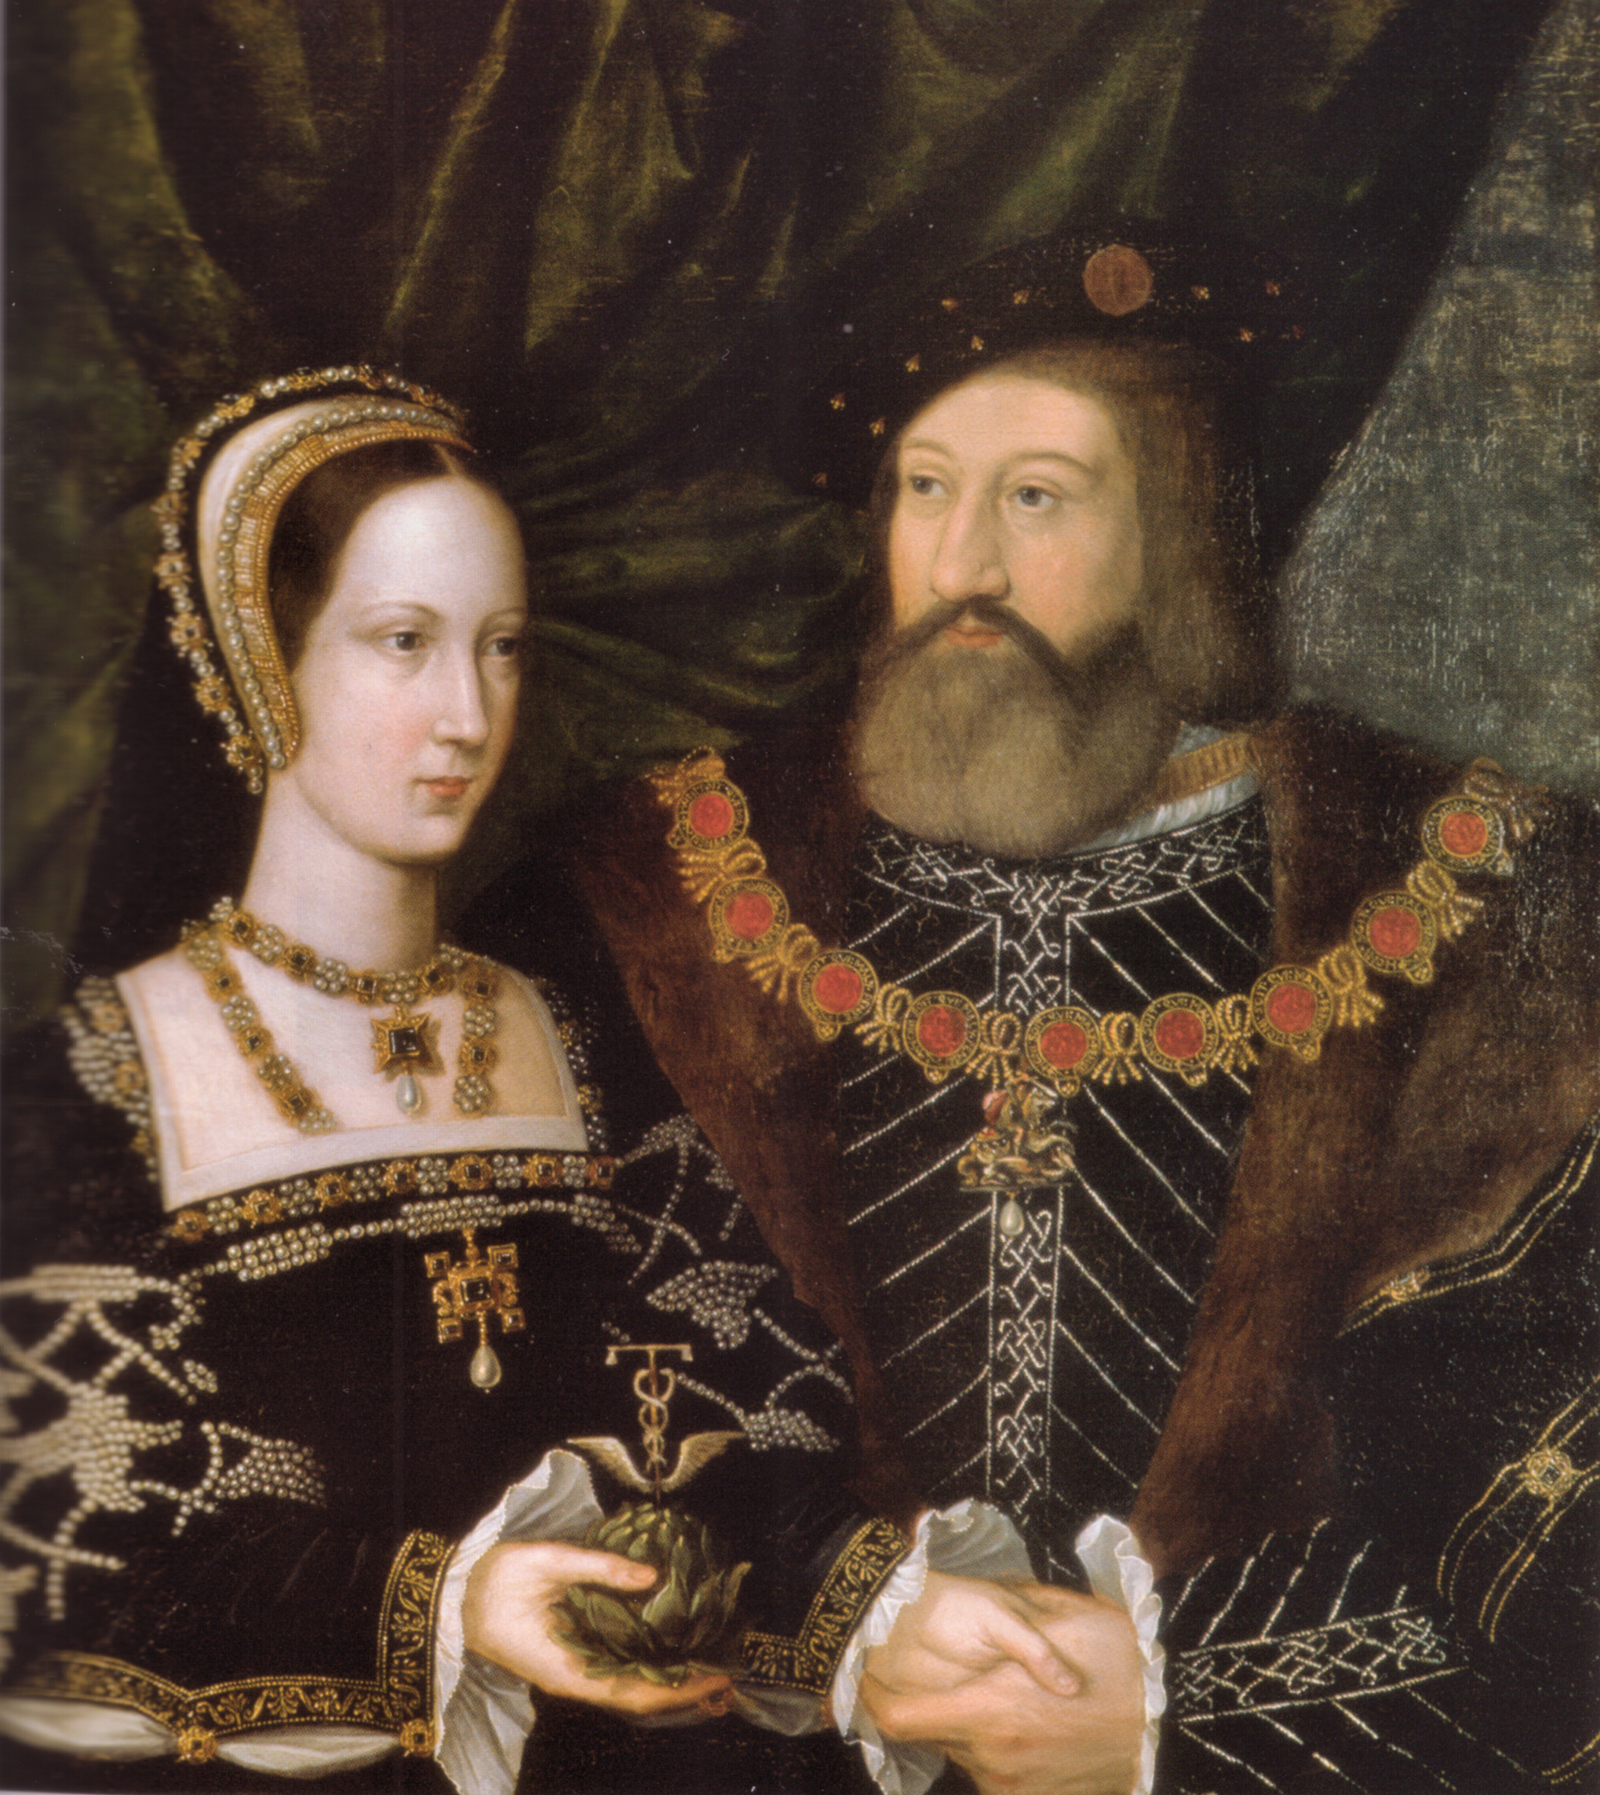 1516 - Princess Mary Tudor and Charles Brandon